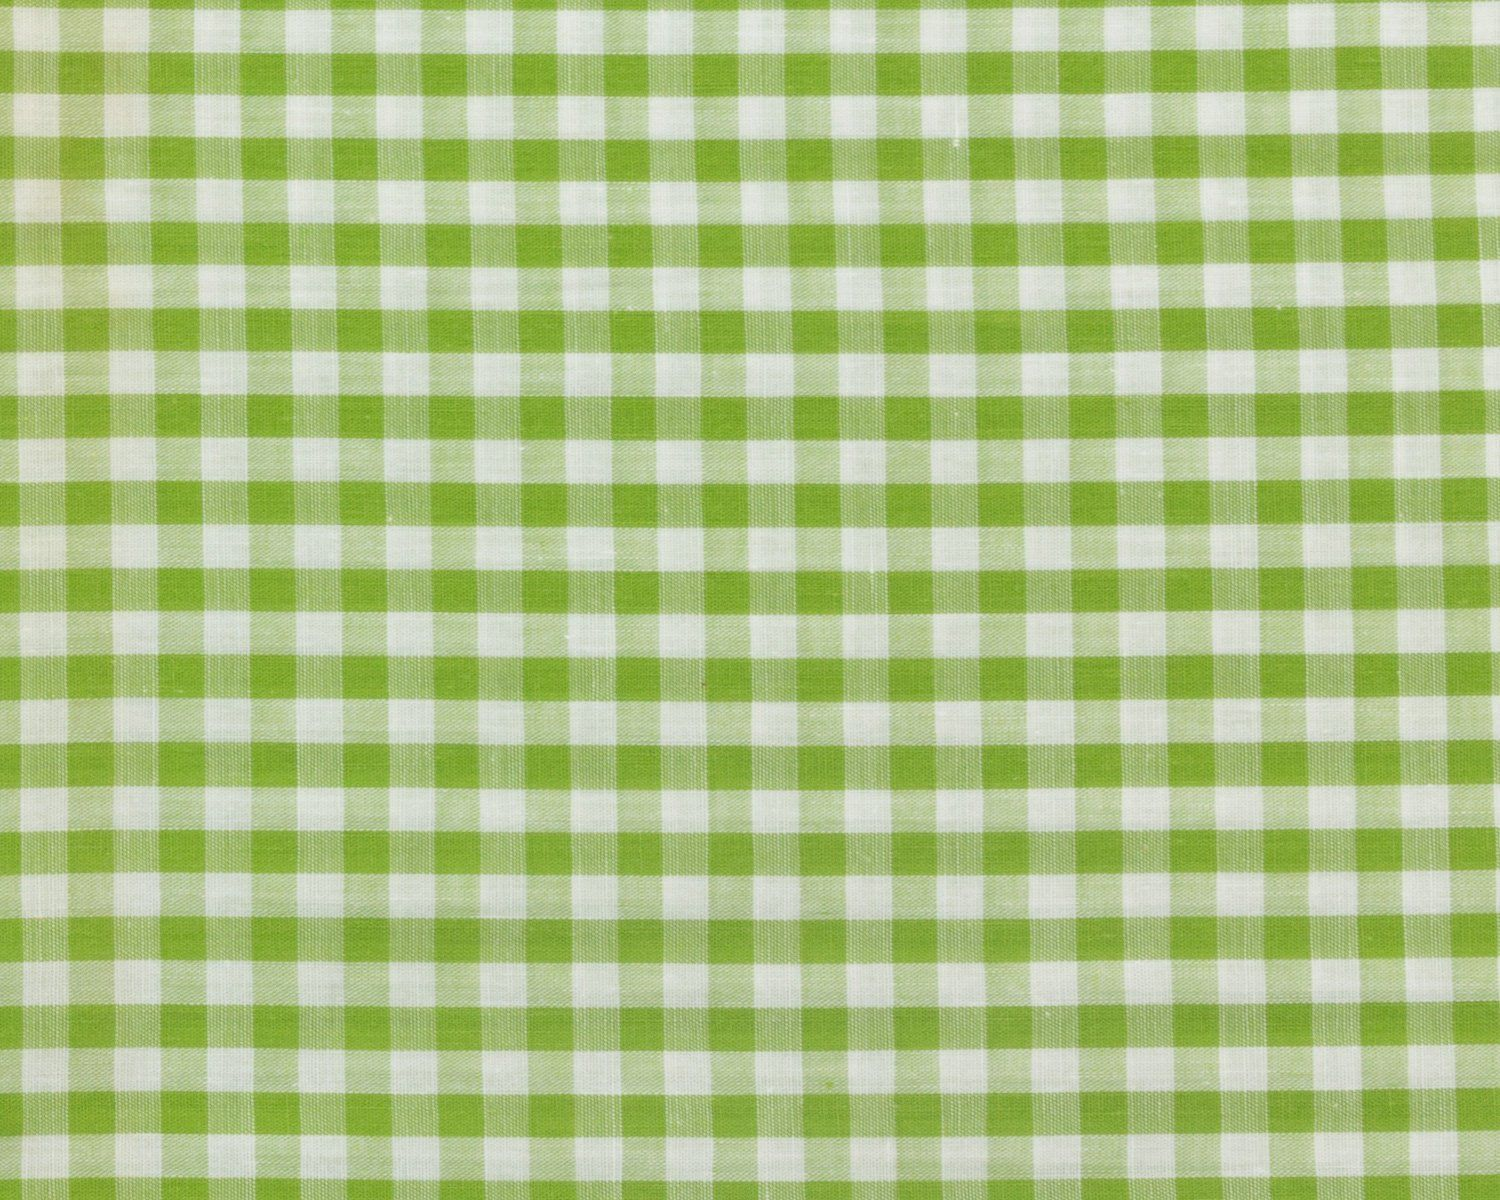 Cotton Fabric Lime Green White Gingham 35 Inches Wide Sold By The Yard Quilting Blouse Shirt Dress Country Western Doll Clothes Fabric Gingham Fabric Gingham